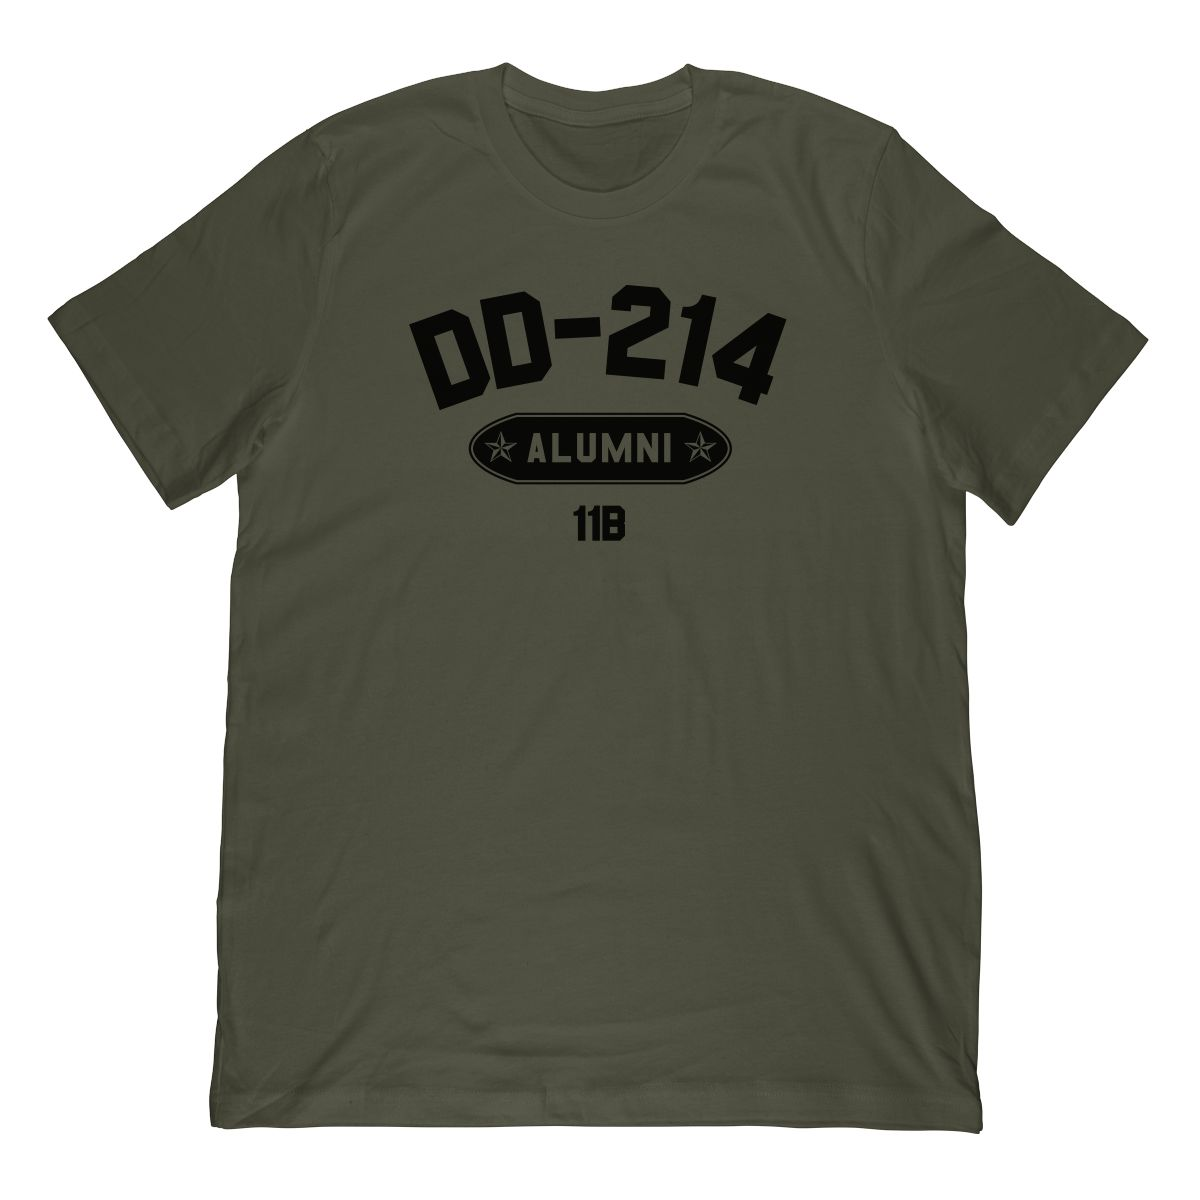 DD-214 Alumni 11B In Black (Stamp Look) T-Shirt